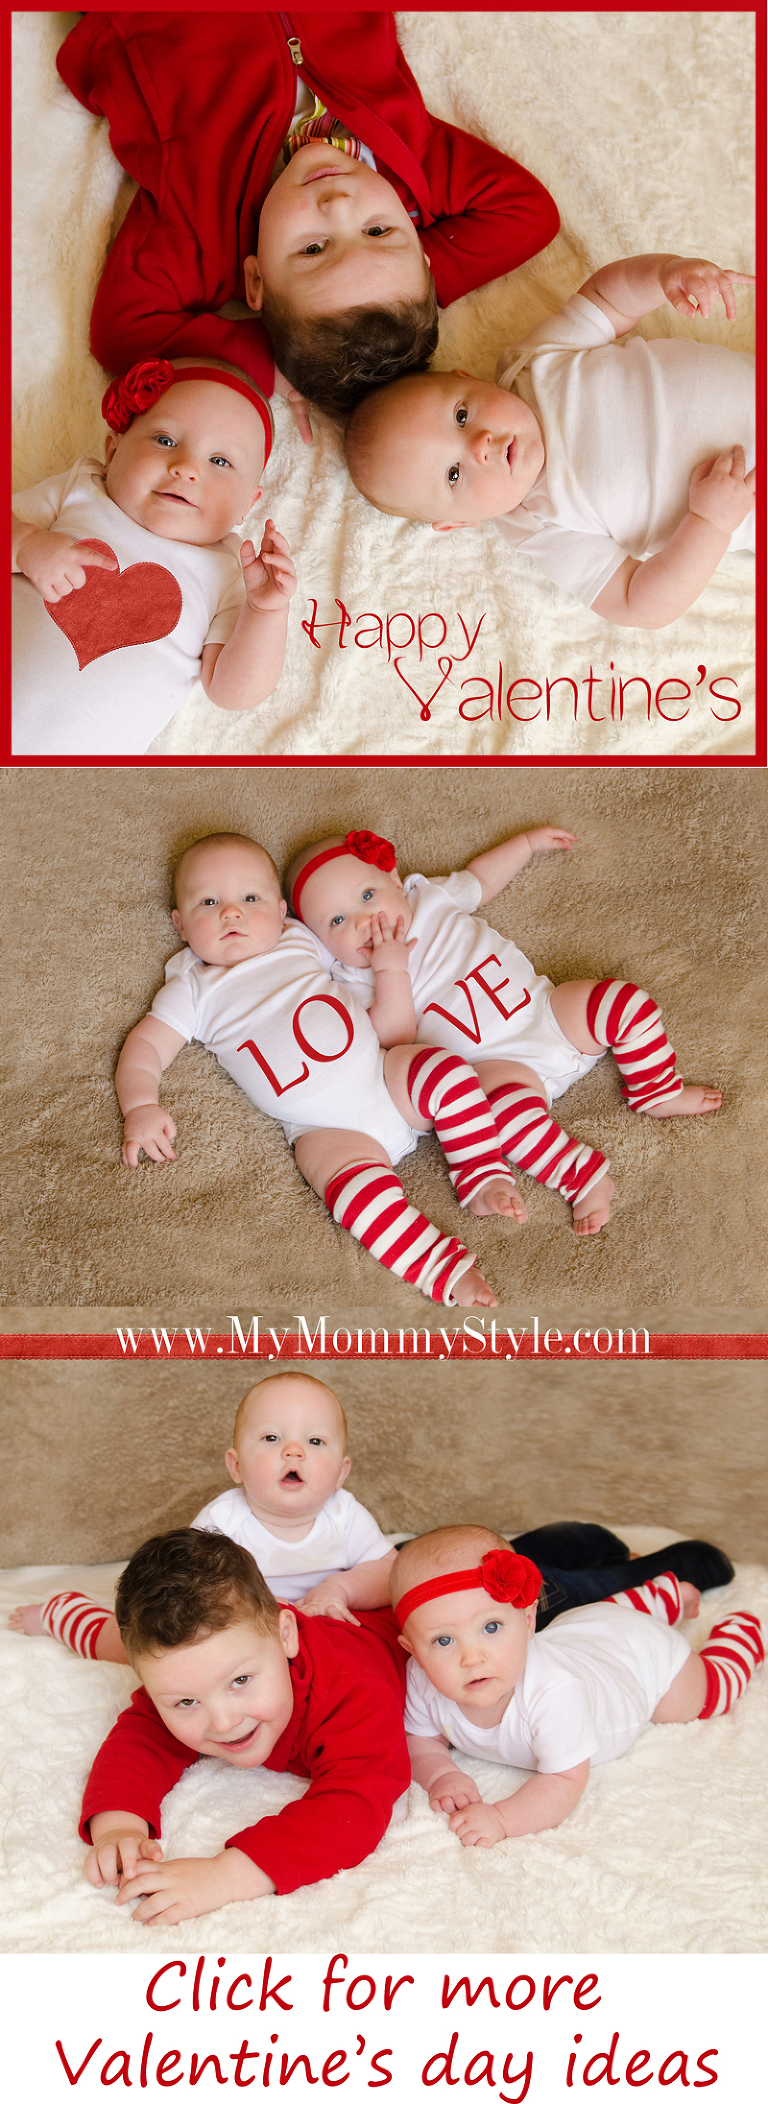 valentines-day-photos-and-ideas-for-kids